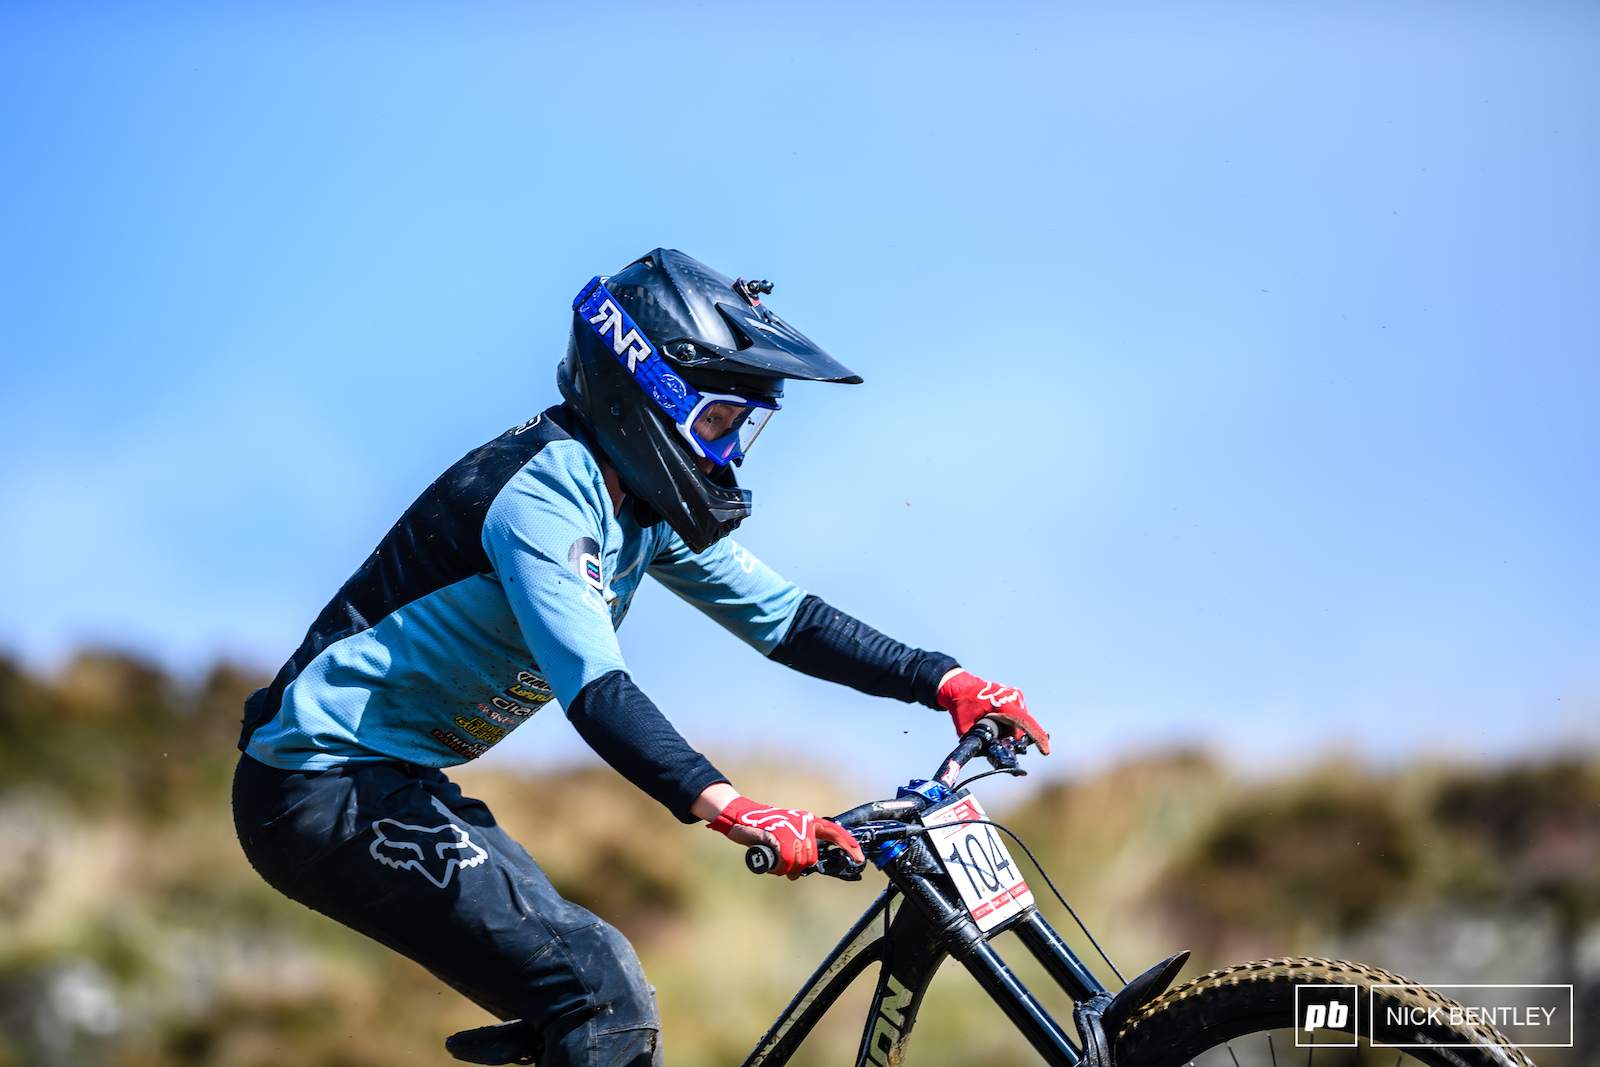 Stacey Fisher having some fun on the back wheel